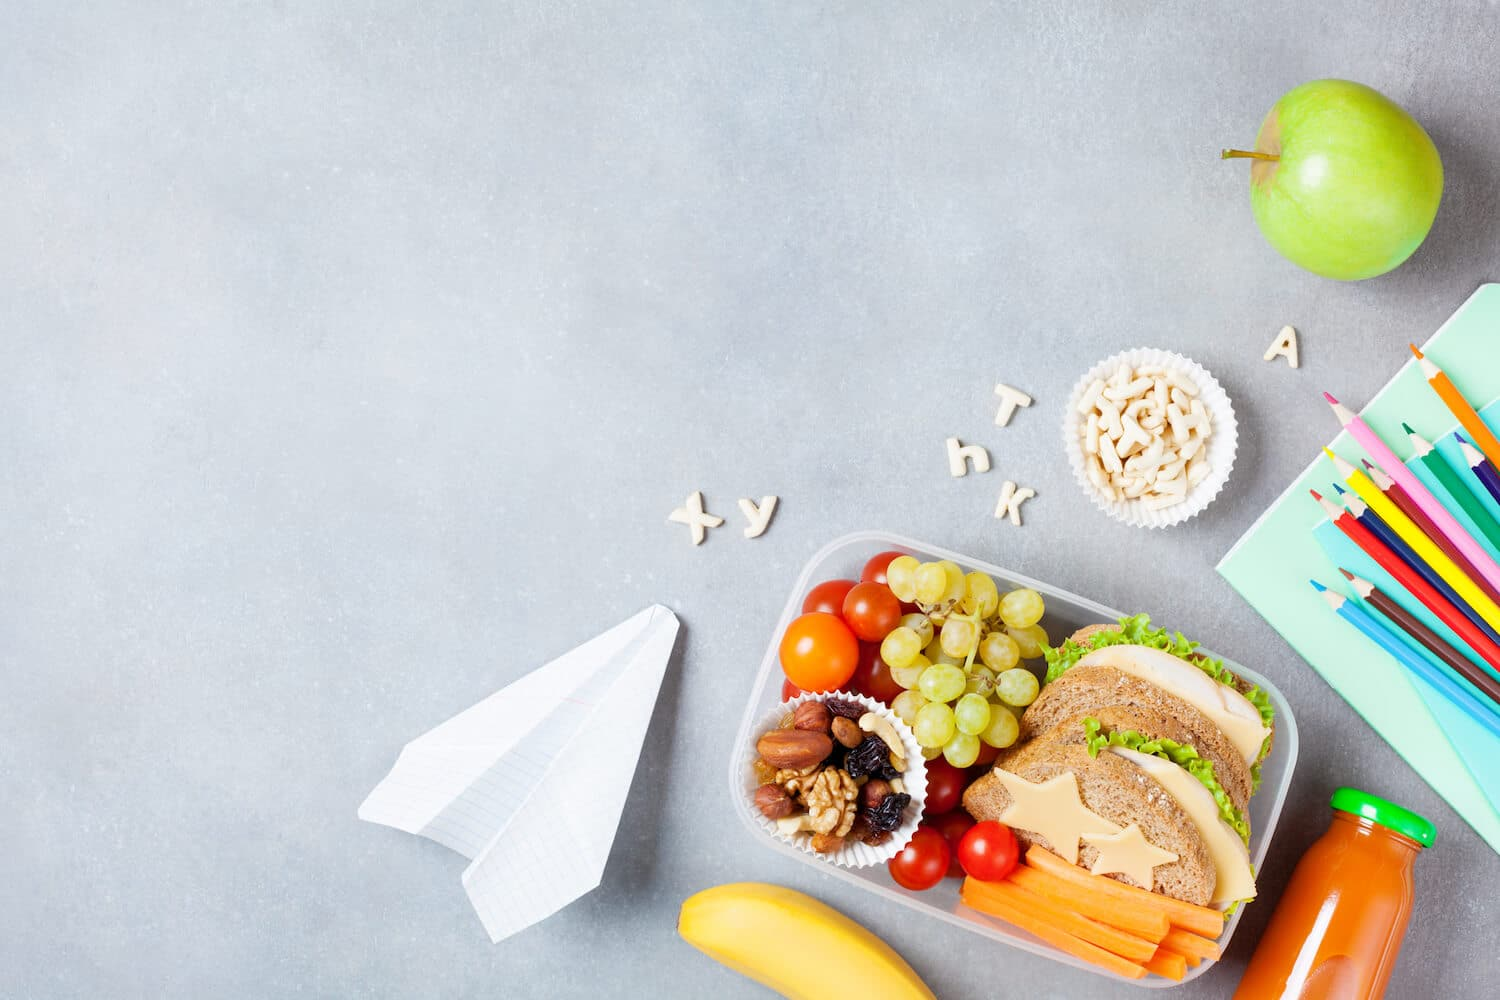 What's in your kids' lunchbox?